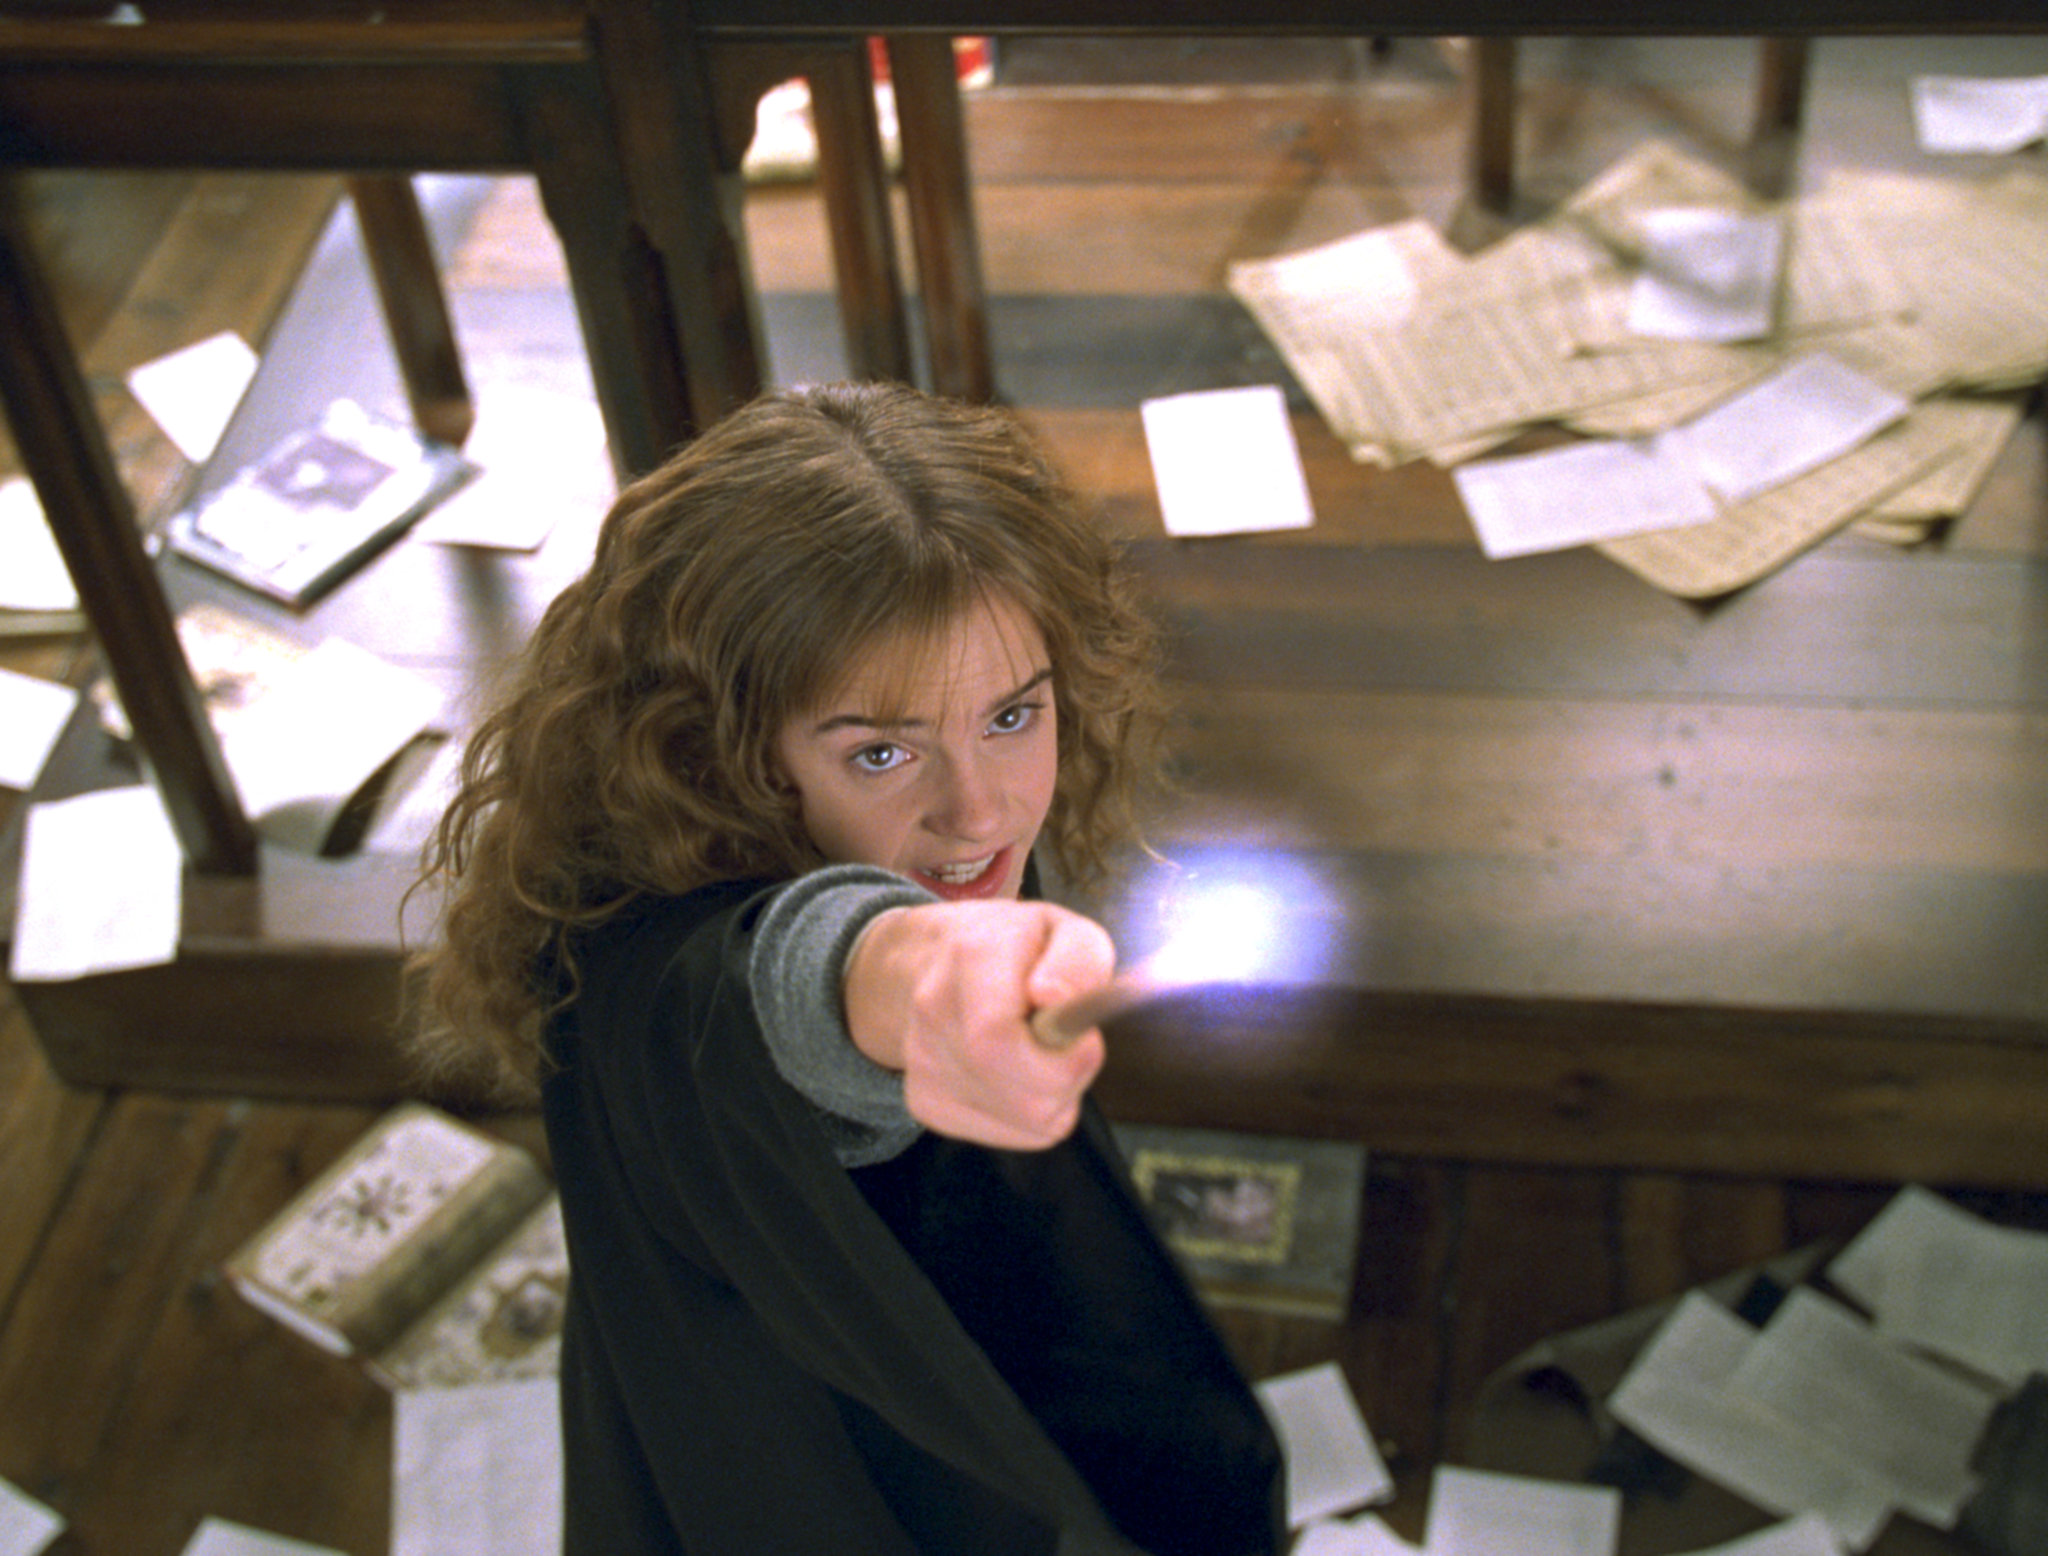 Hermione holding up her wand from the Chamber of Secrets